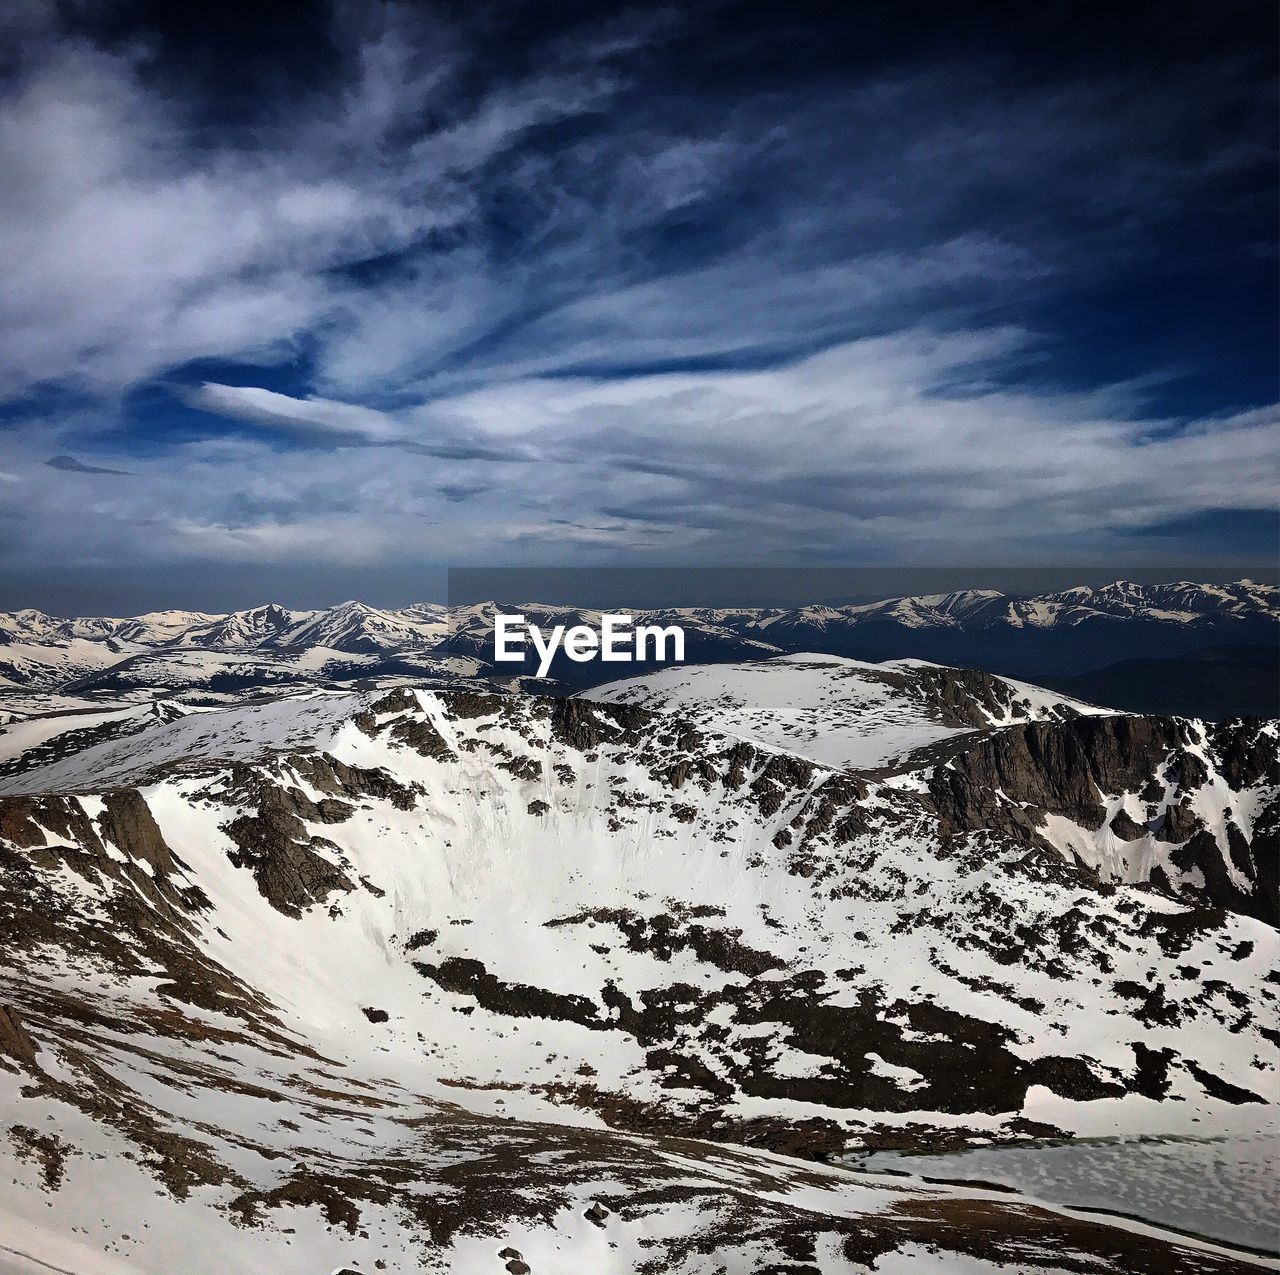 snow, mountain, winter, beauty in nature, cold temperature, nature, scenics, mountain range, snowcapped mountain, tranquil scene, tranquility, weather, landscape, cloud - sky, sky, outdoors, majestic, non-urban scene, physical geography, day, no people, travel destinations, wilderness area